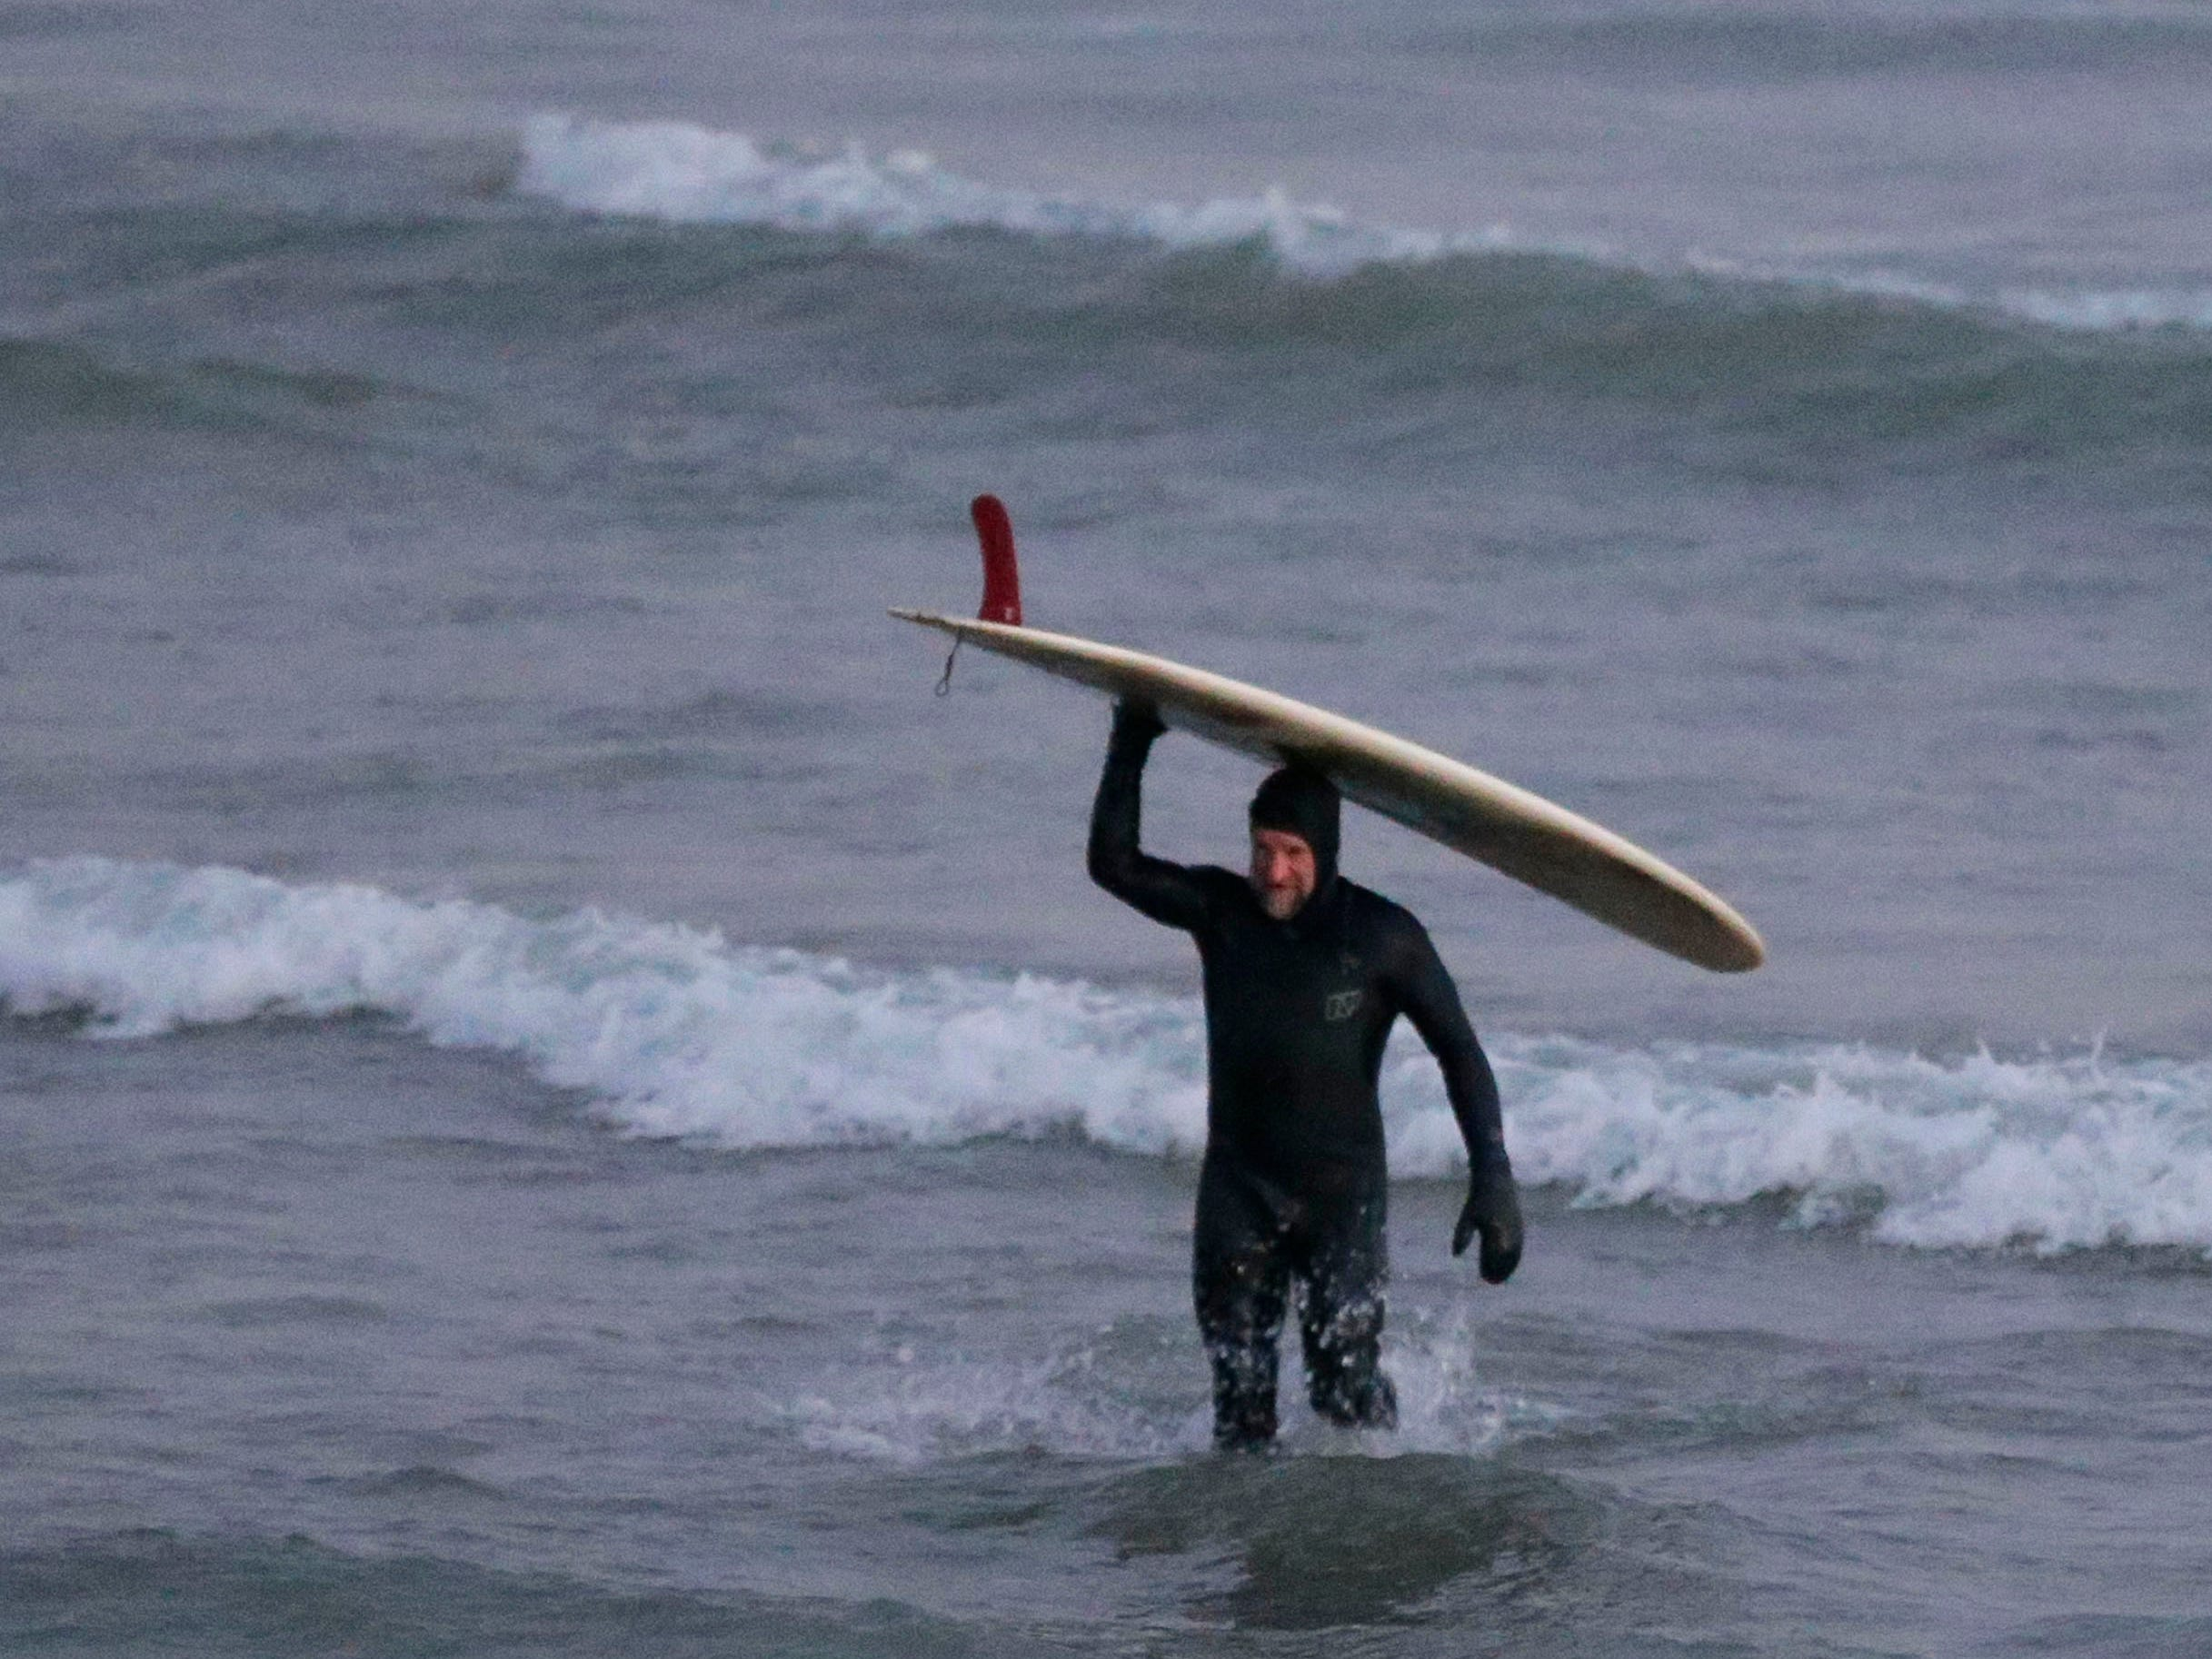 Brian David walks up to land after surfing at the lakefront, Tuesday, December 18, 2108, in Sheboygan, Wis.